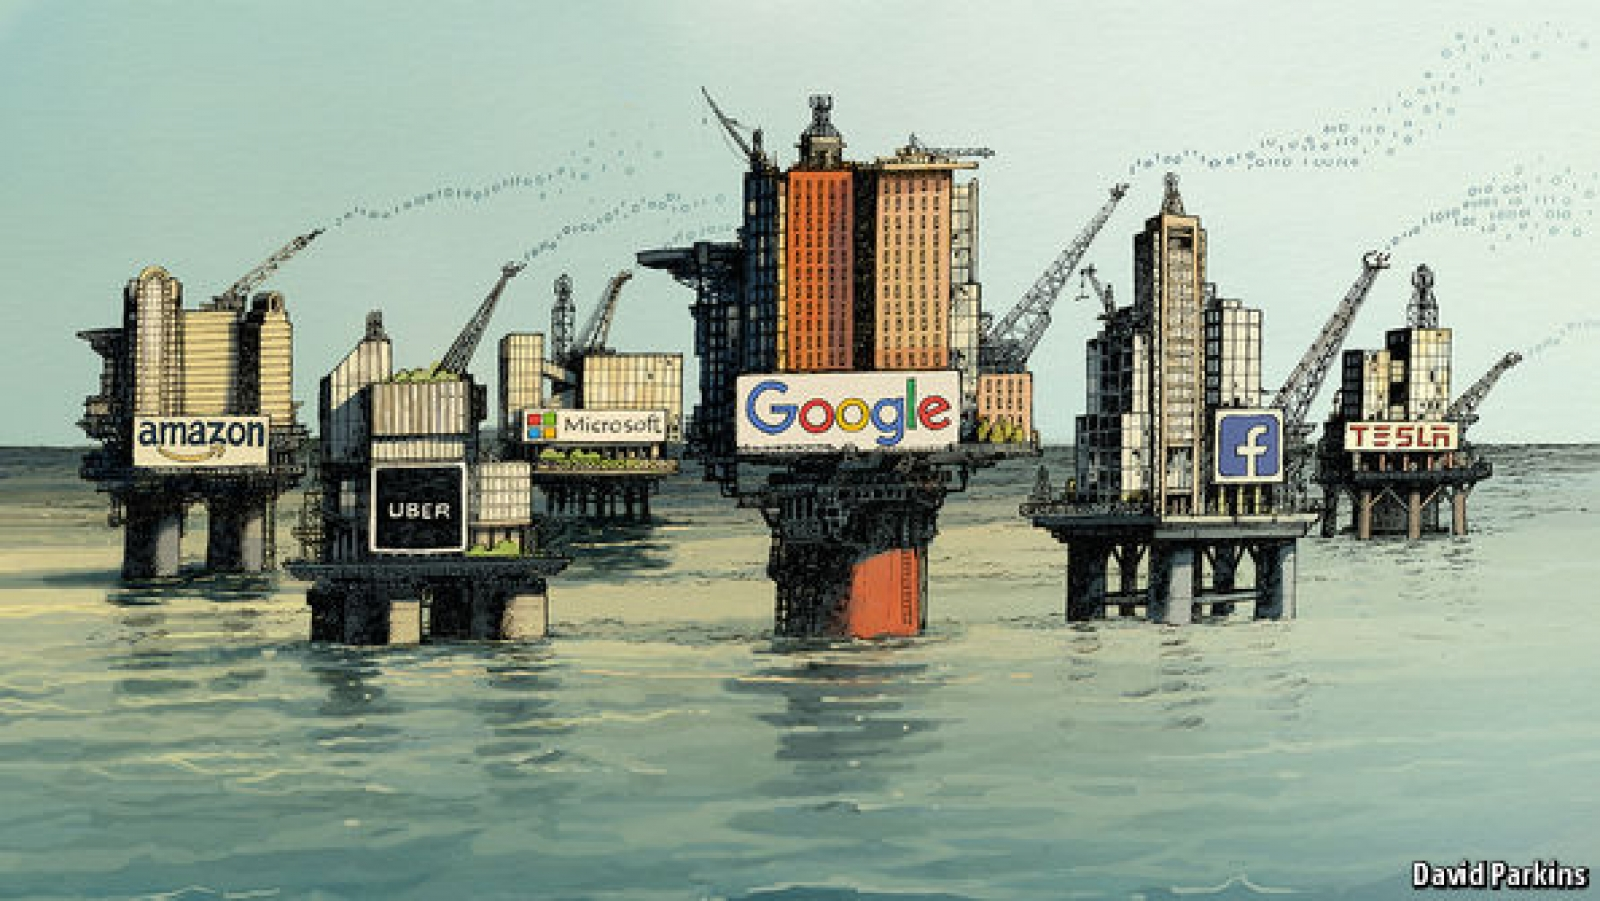 Regulating the internet giantsThe world's most valuable resource is no longer oil, but data